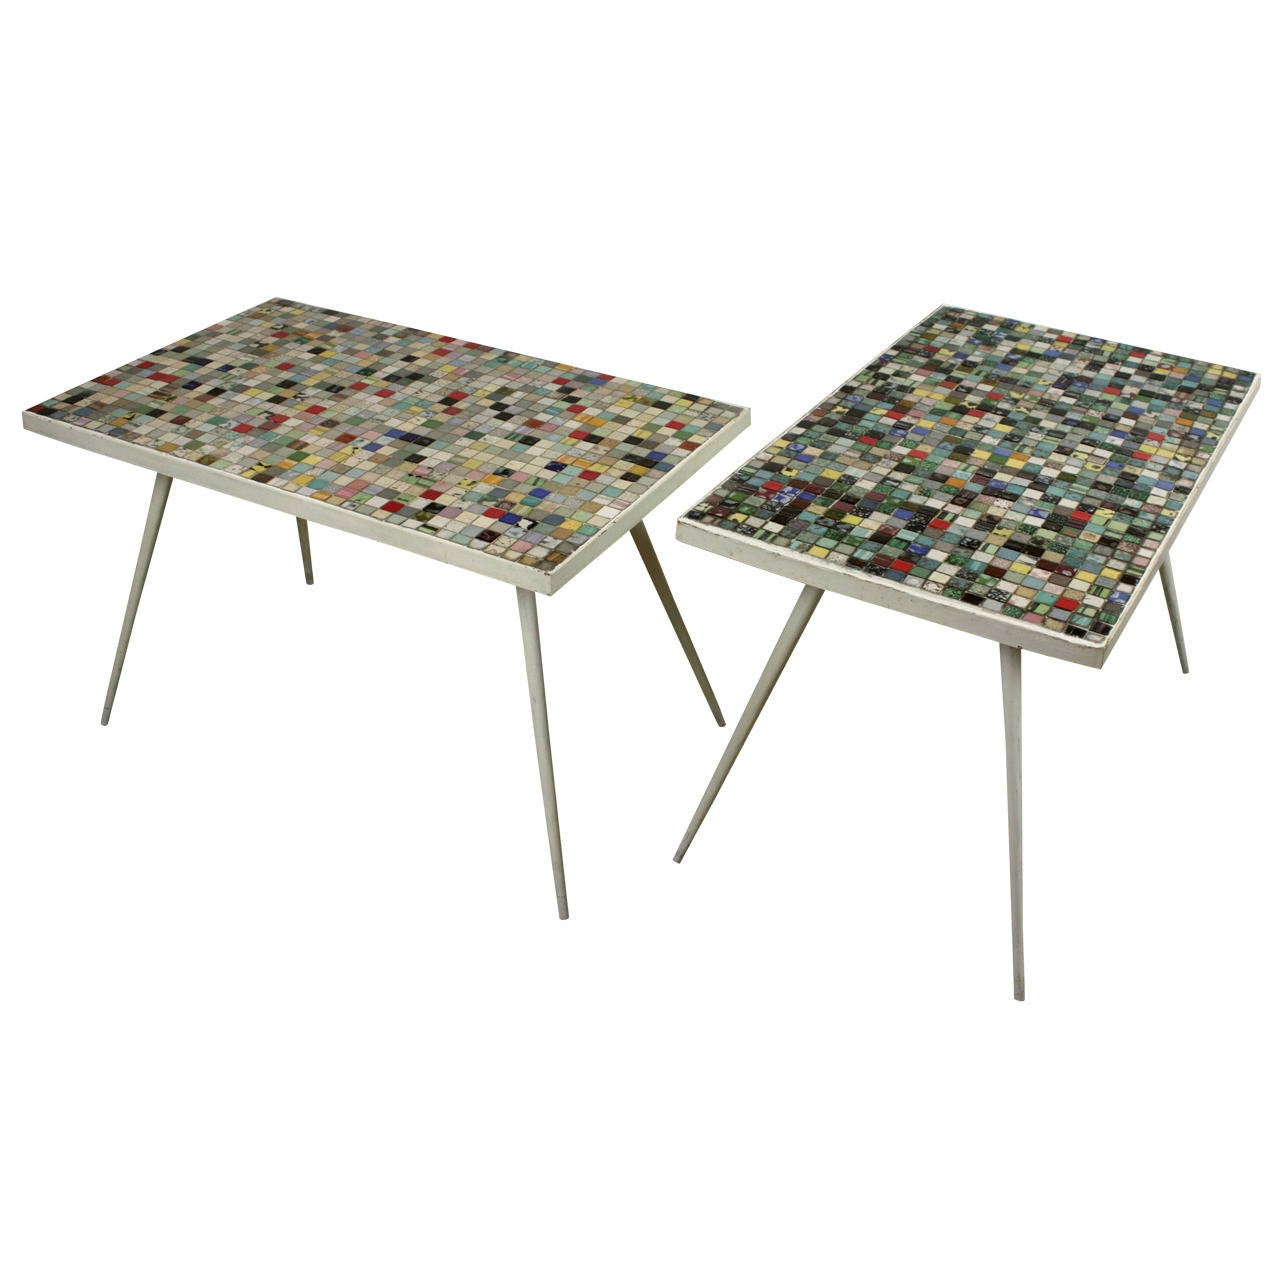 Pair of Multicolored Tiles Coffee Tables